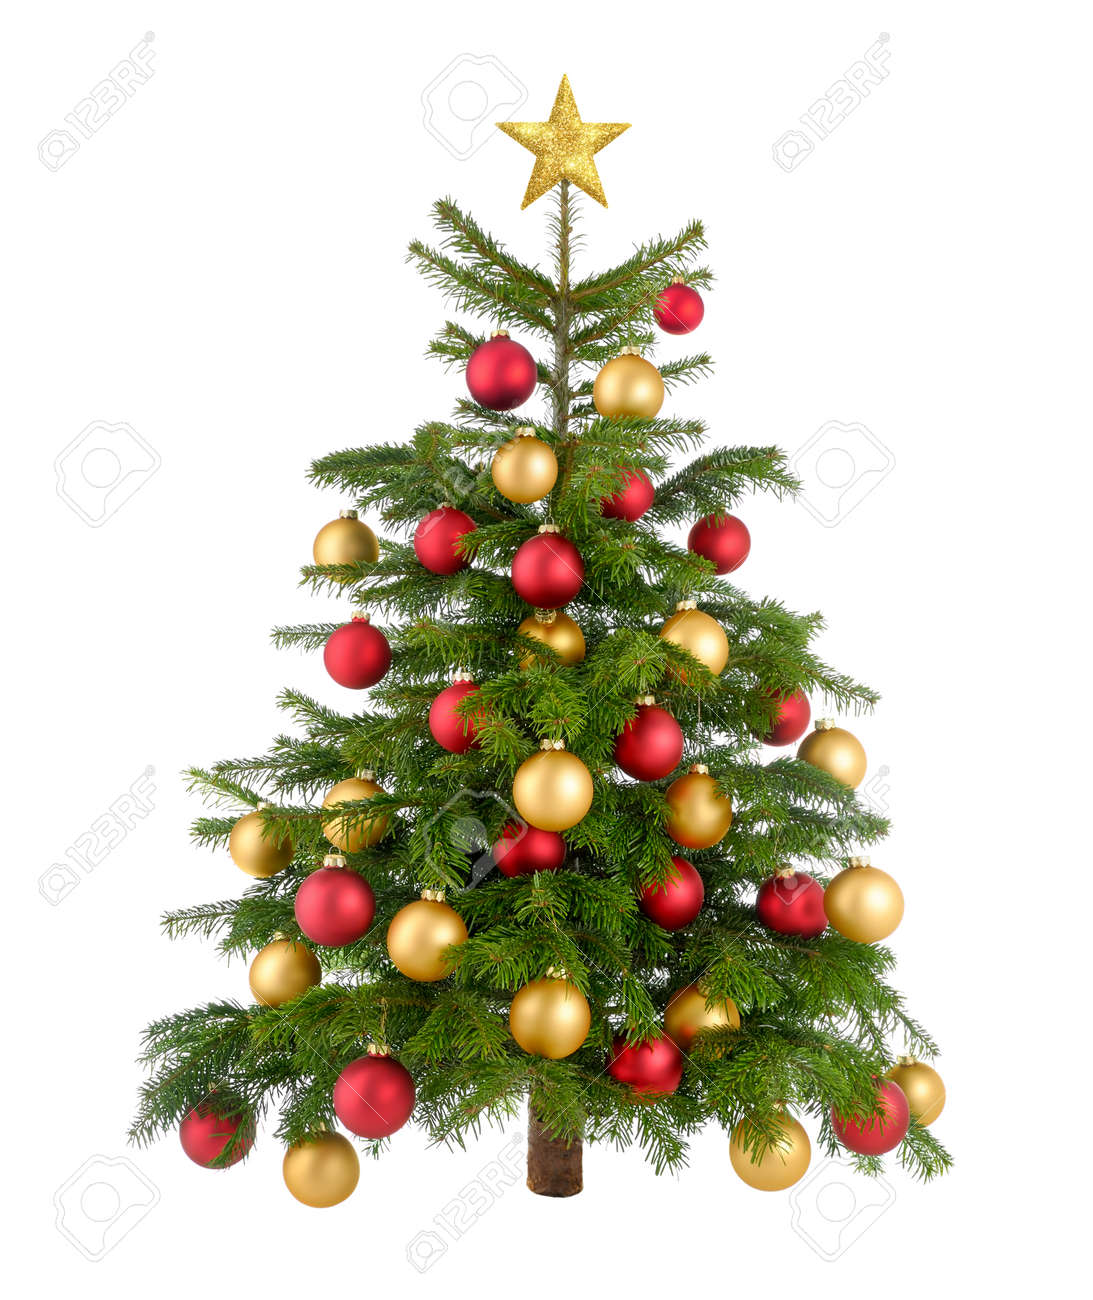 clean studio shot of a gorgeous natural christmas tree decorated with red and gold baubles and